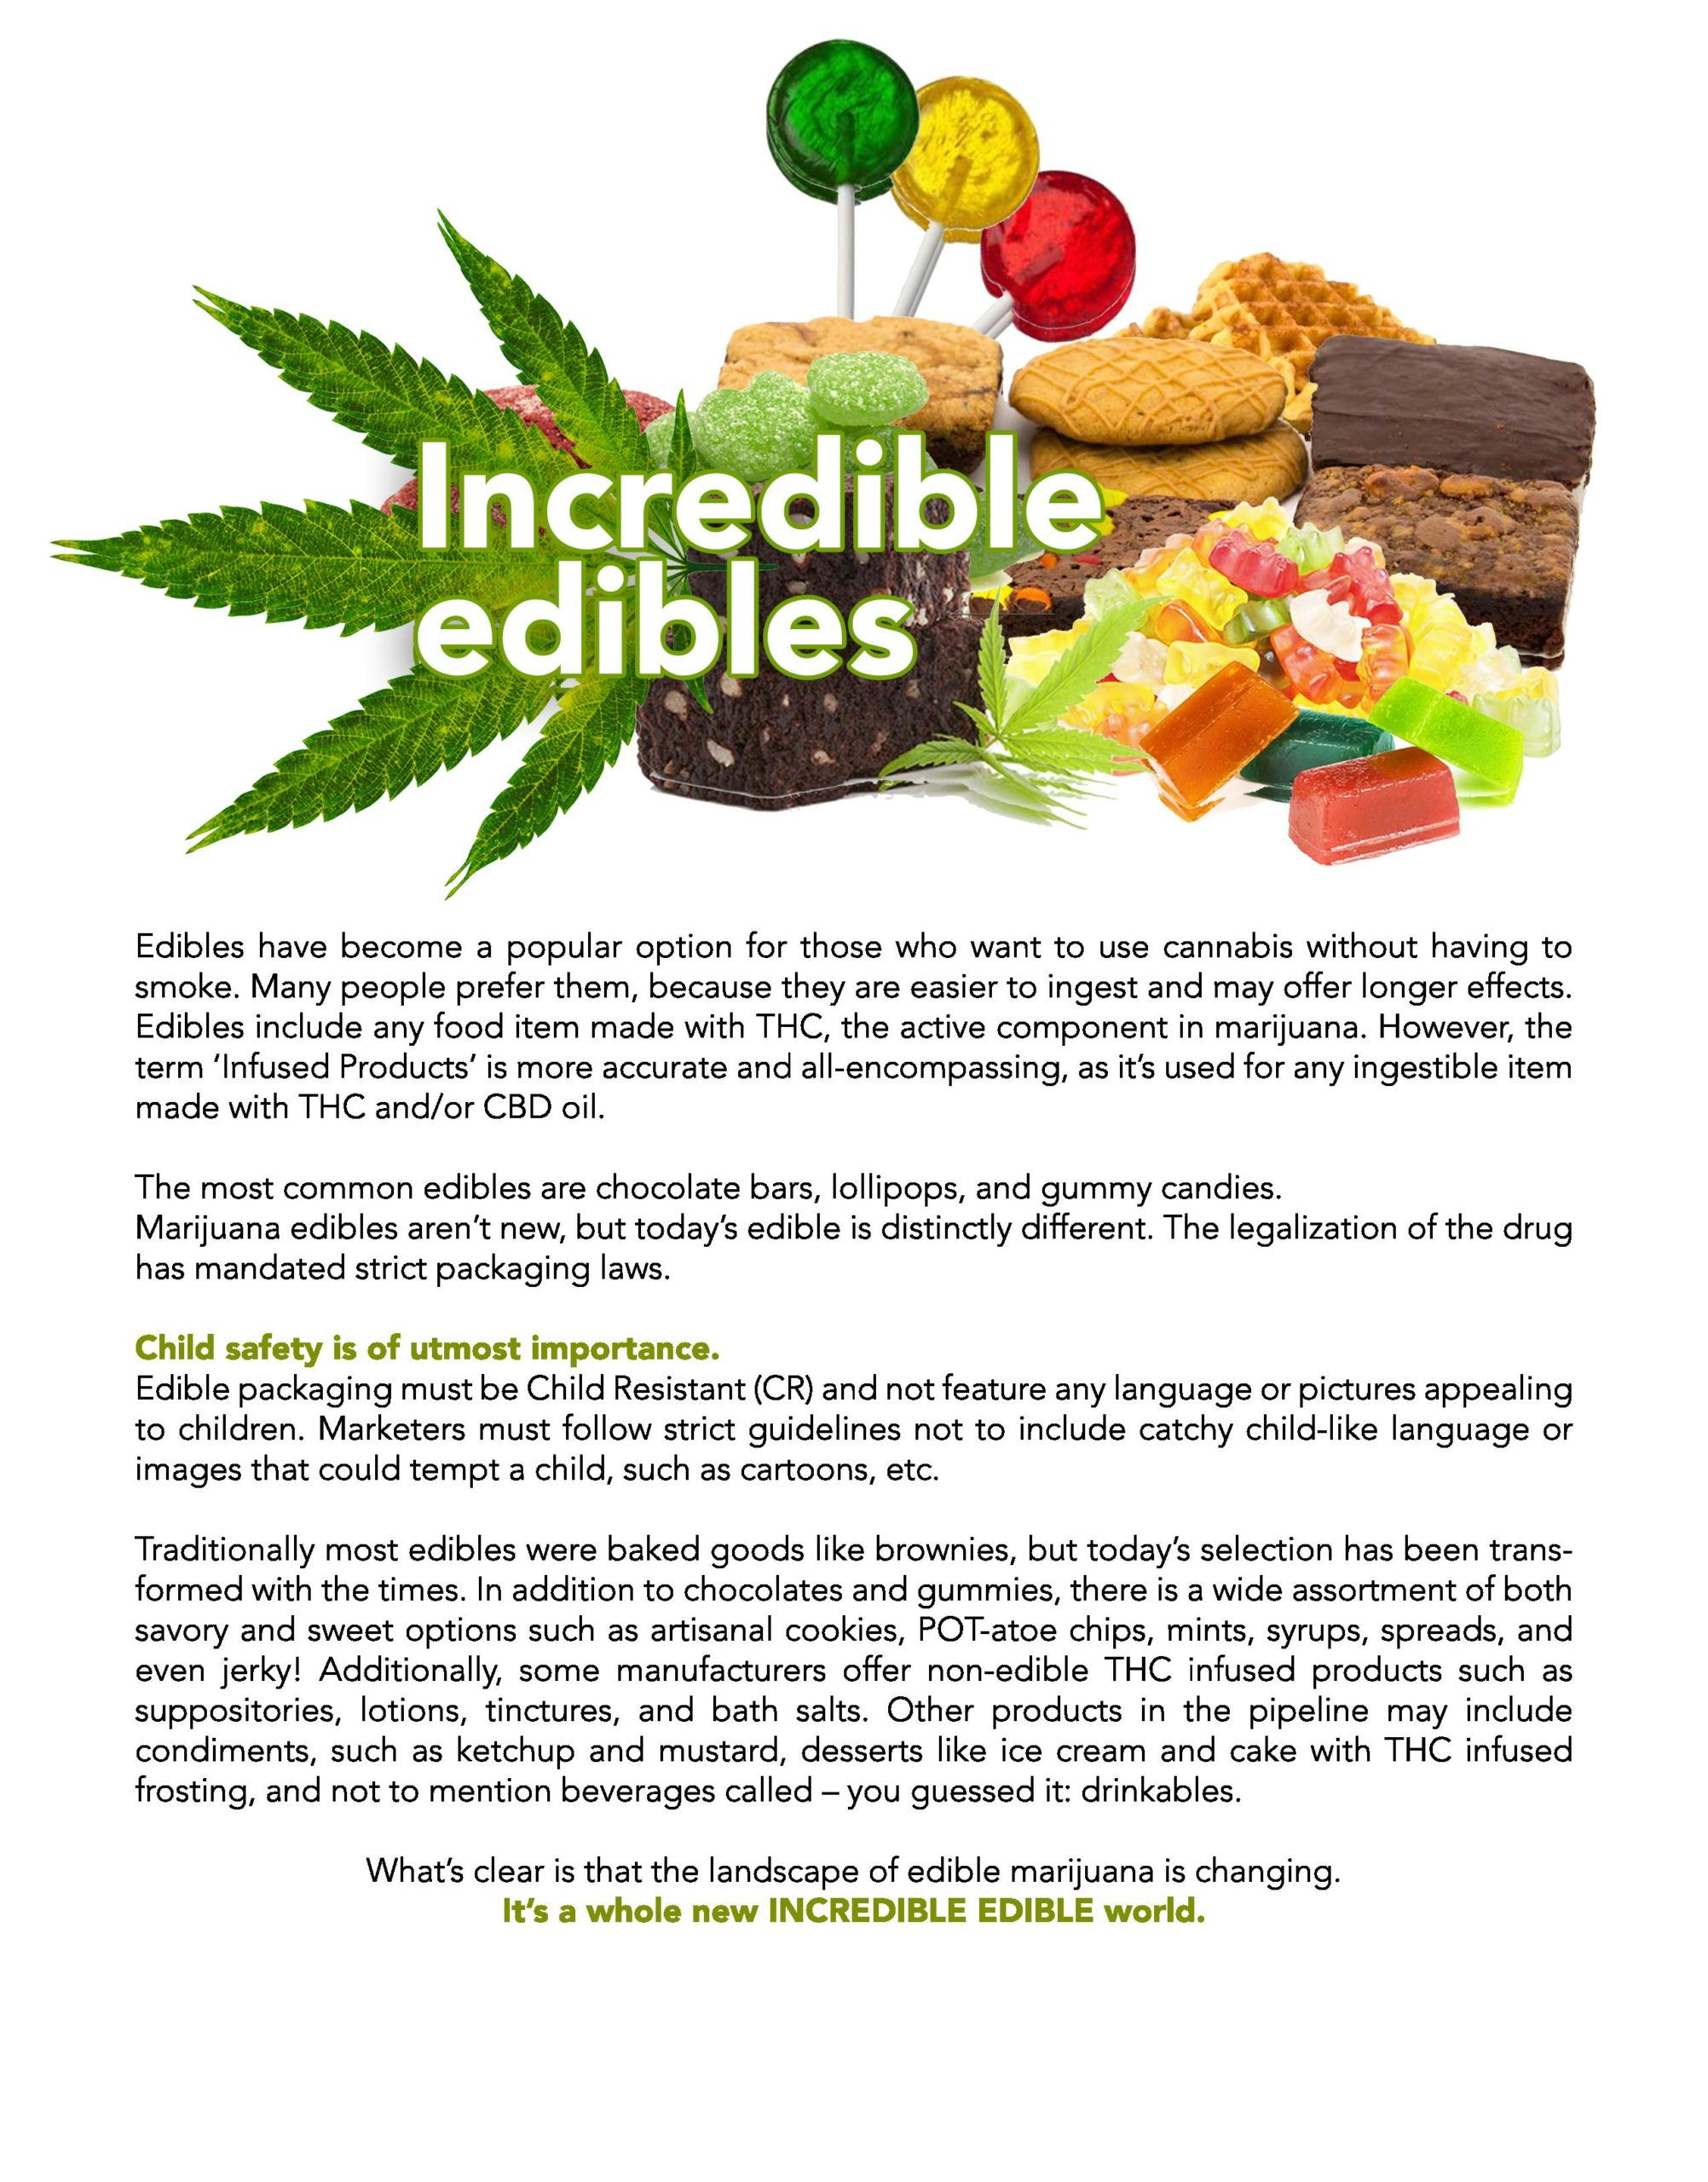 Incredible Edibles - Cannabis Edible Packaging